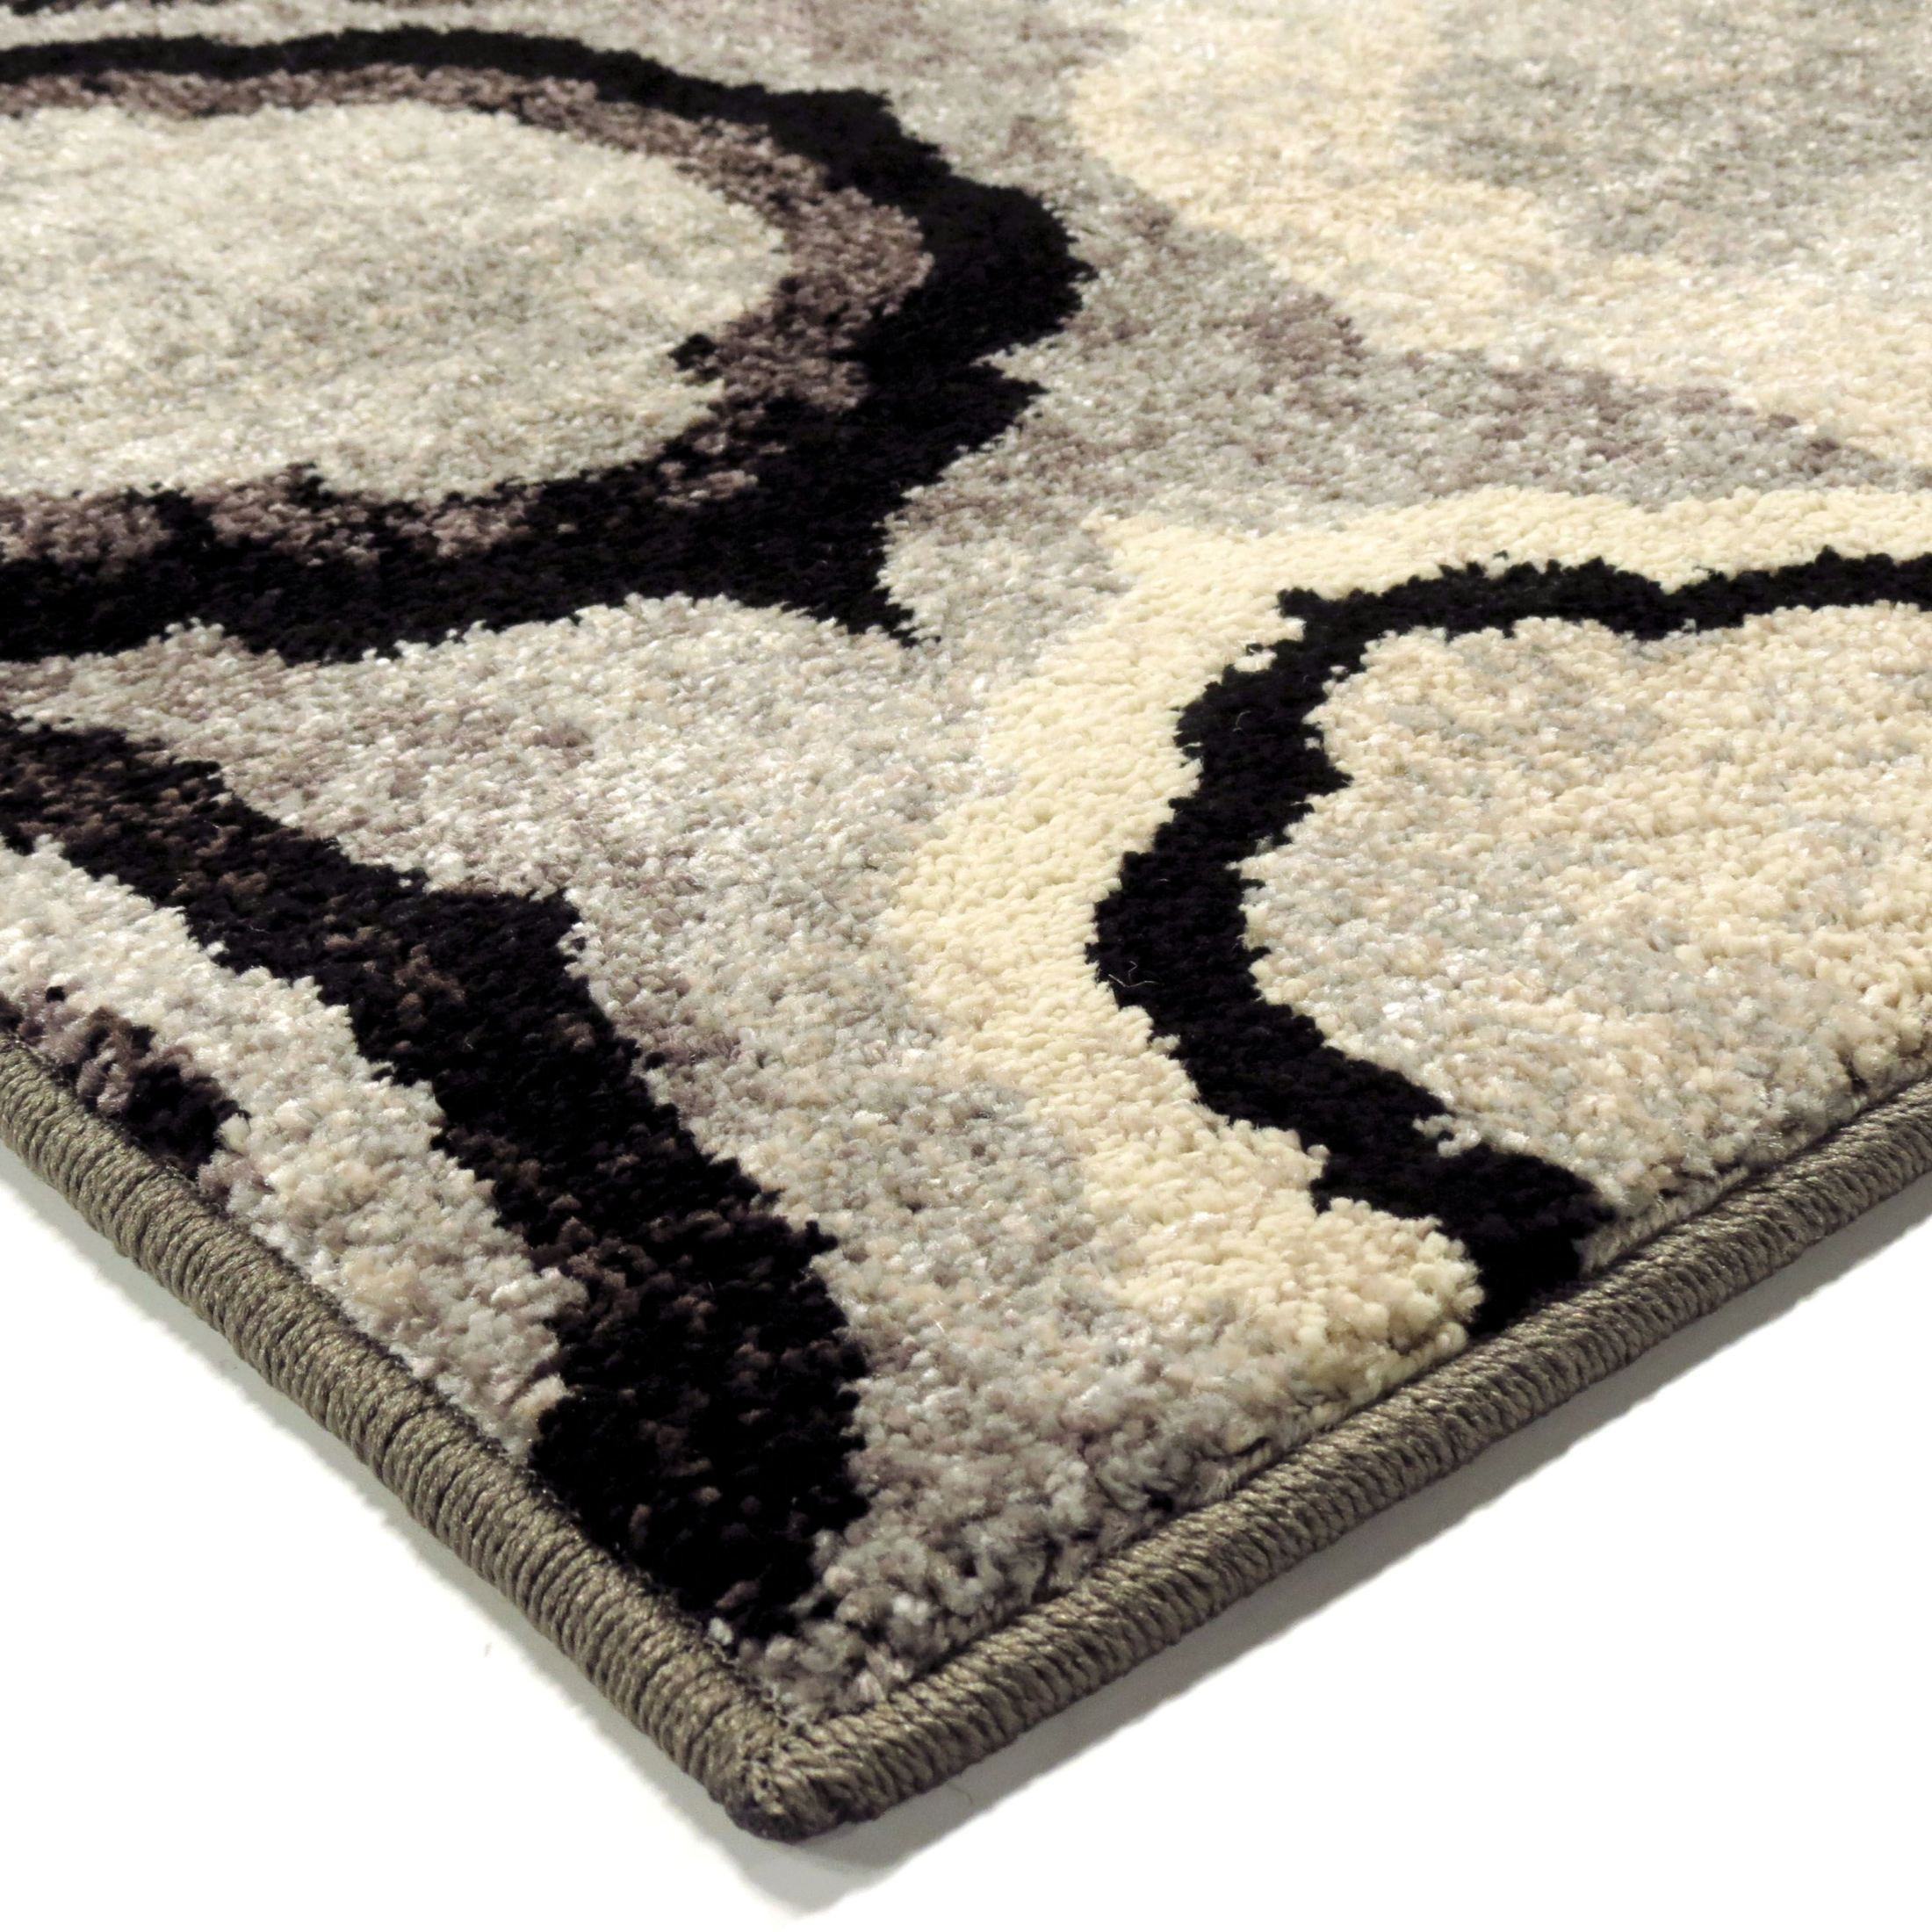 Gray Area Rug 8x11: Orian Rugs Plush Pile Circles Pannel Gray Area Large Rug